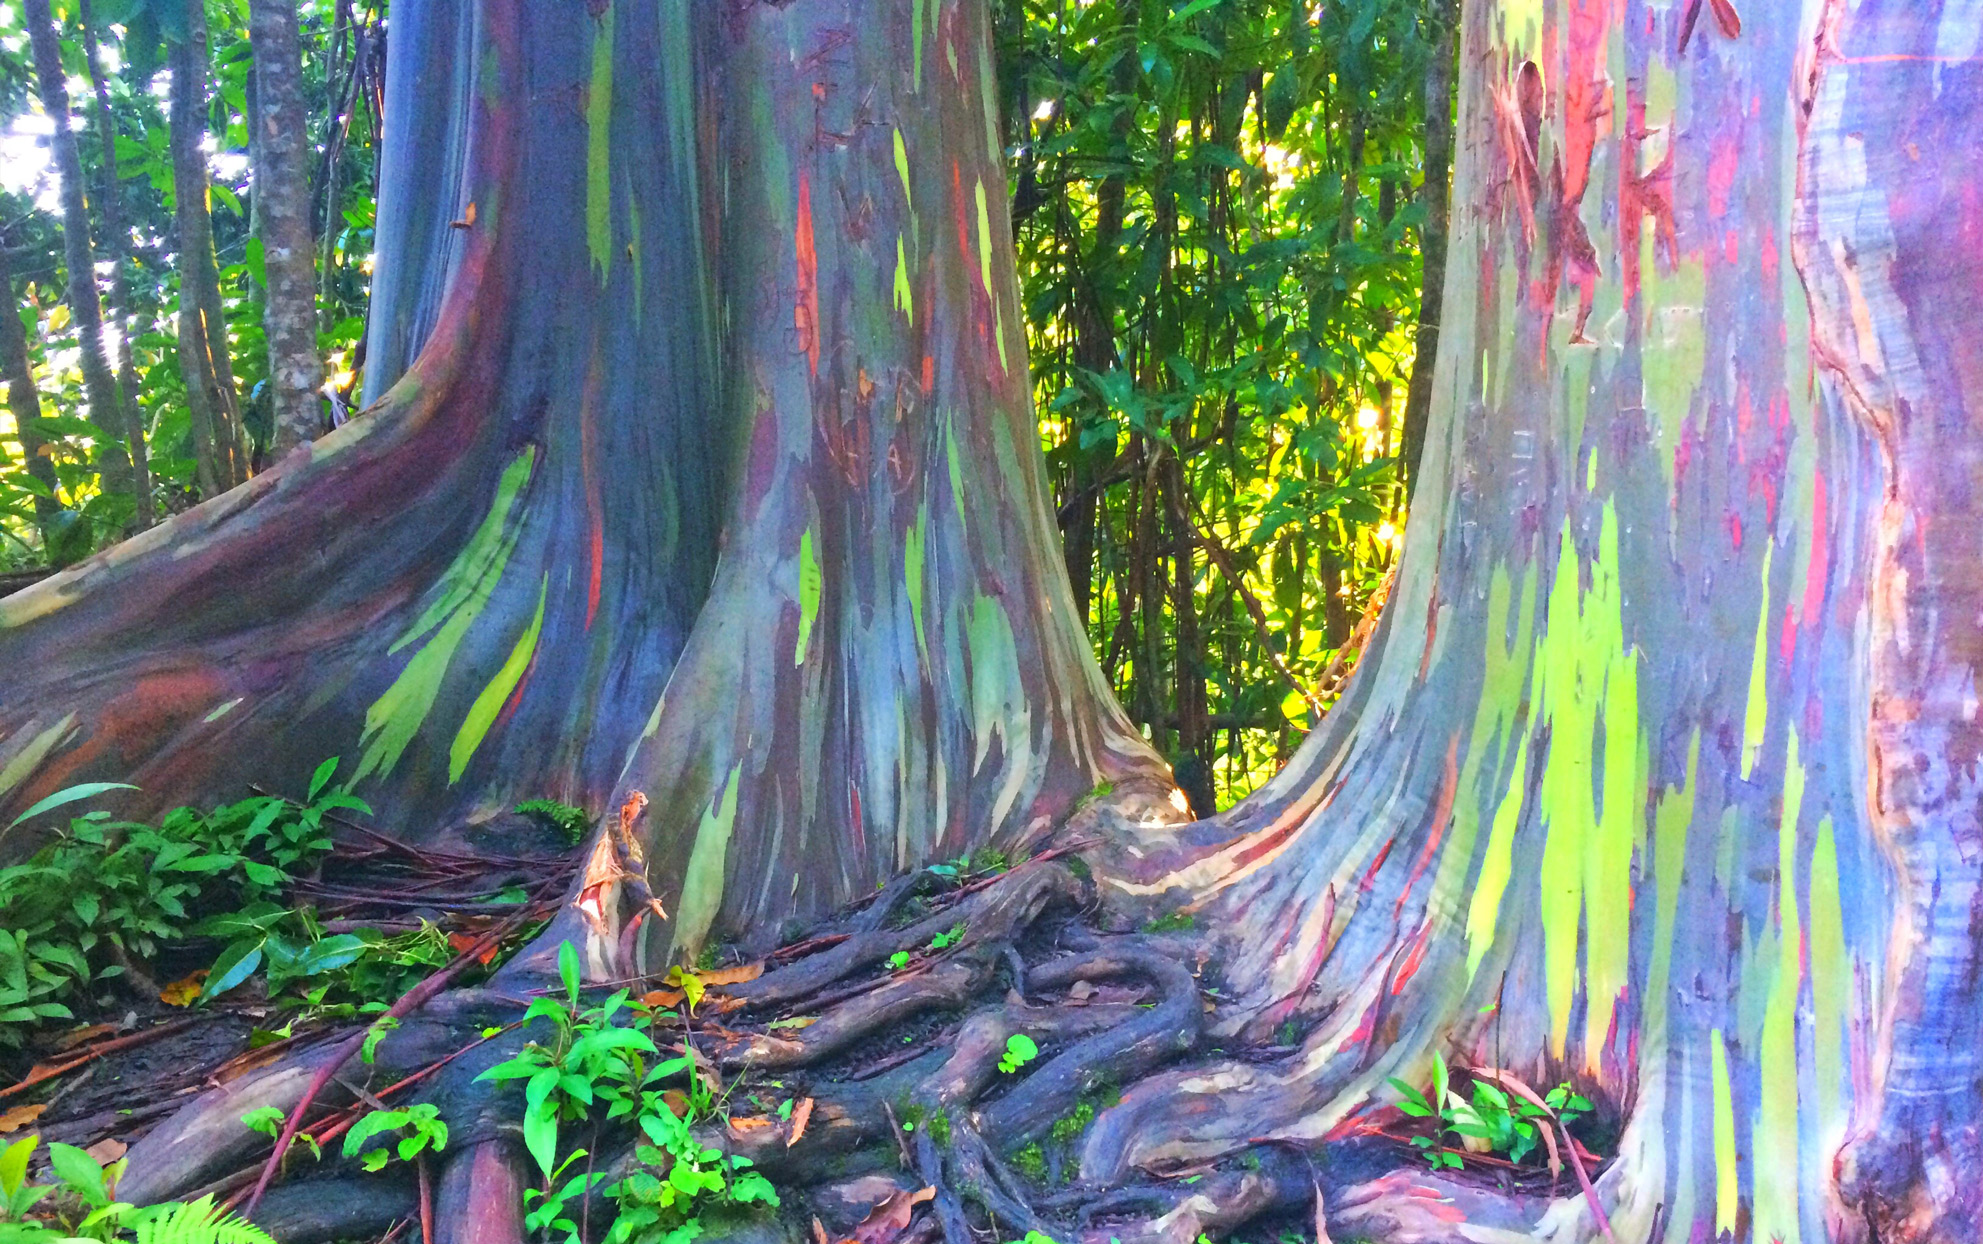 Rainbow Eucalyptus Trees Look Spray-Painted (But They're Real!)